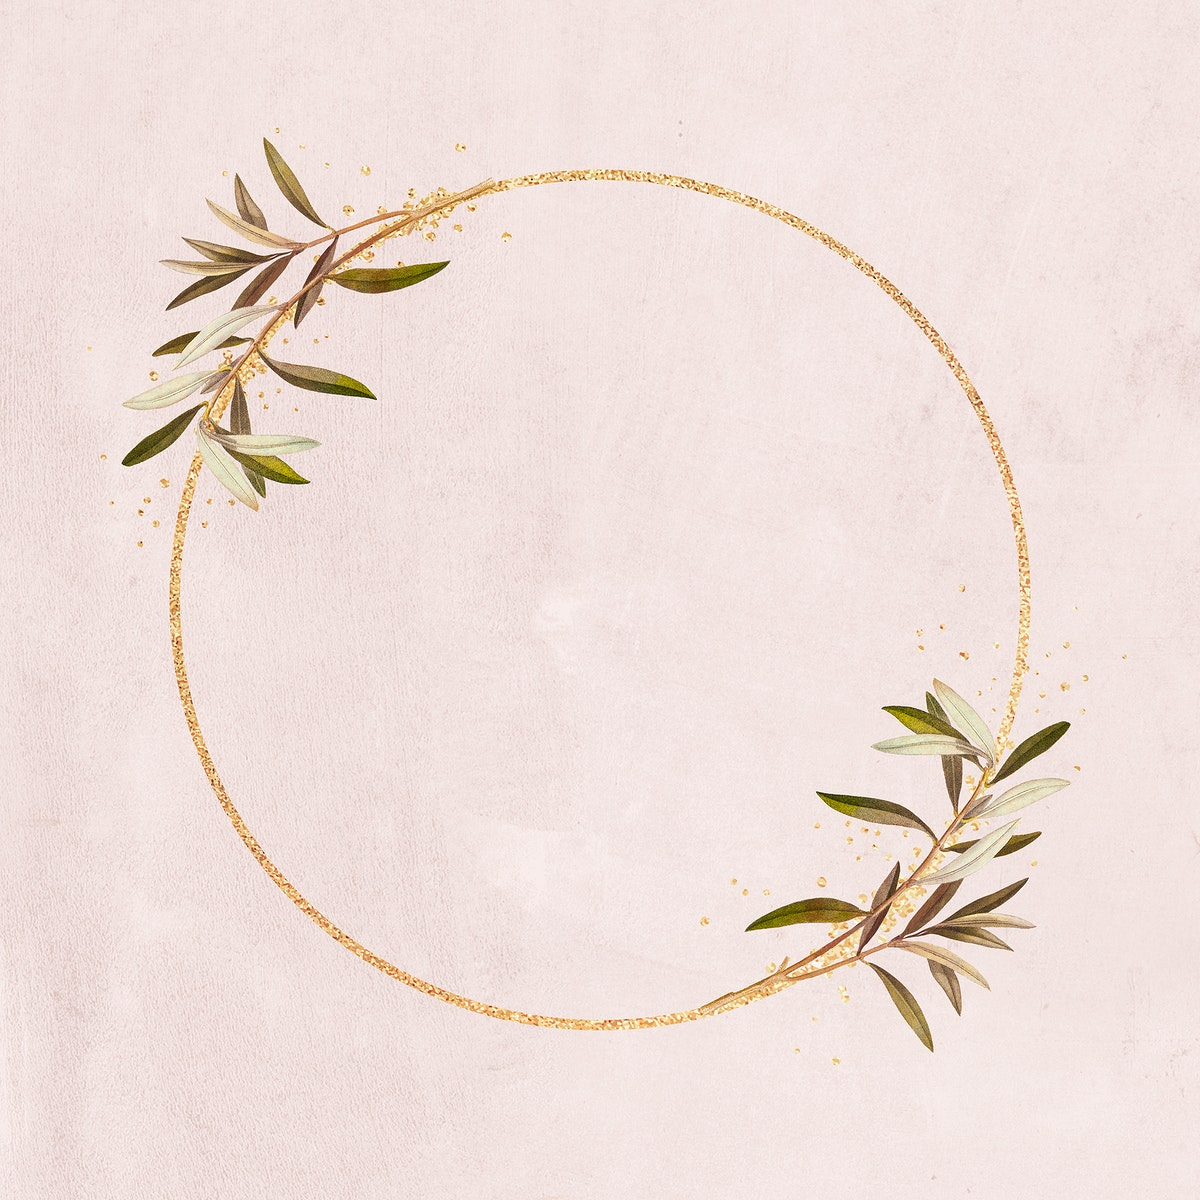 Round gold frame with olive branches illustration